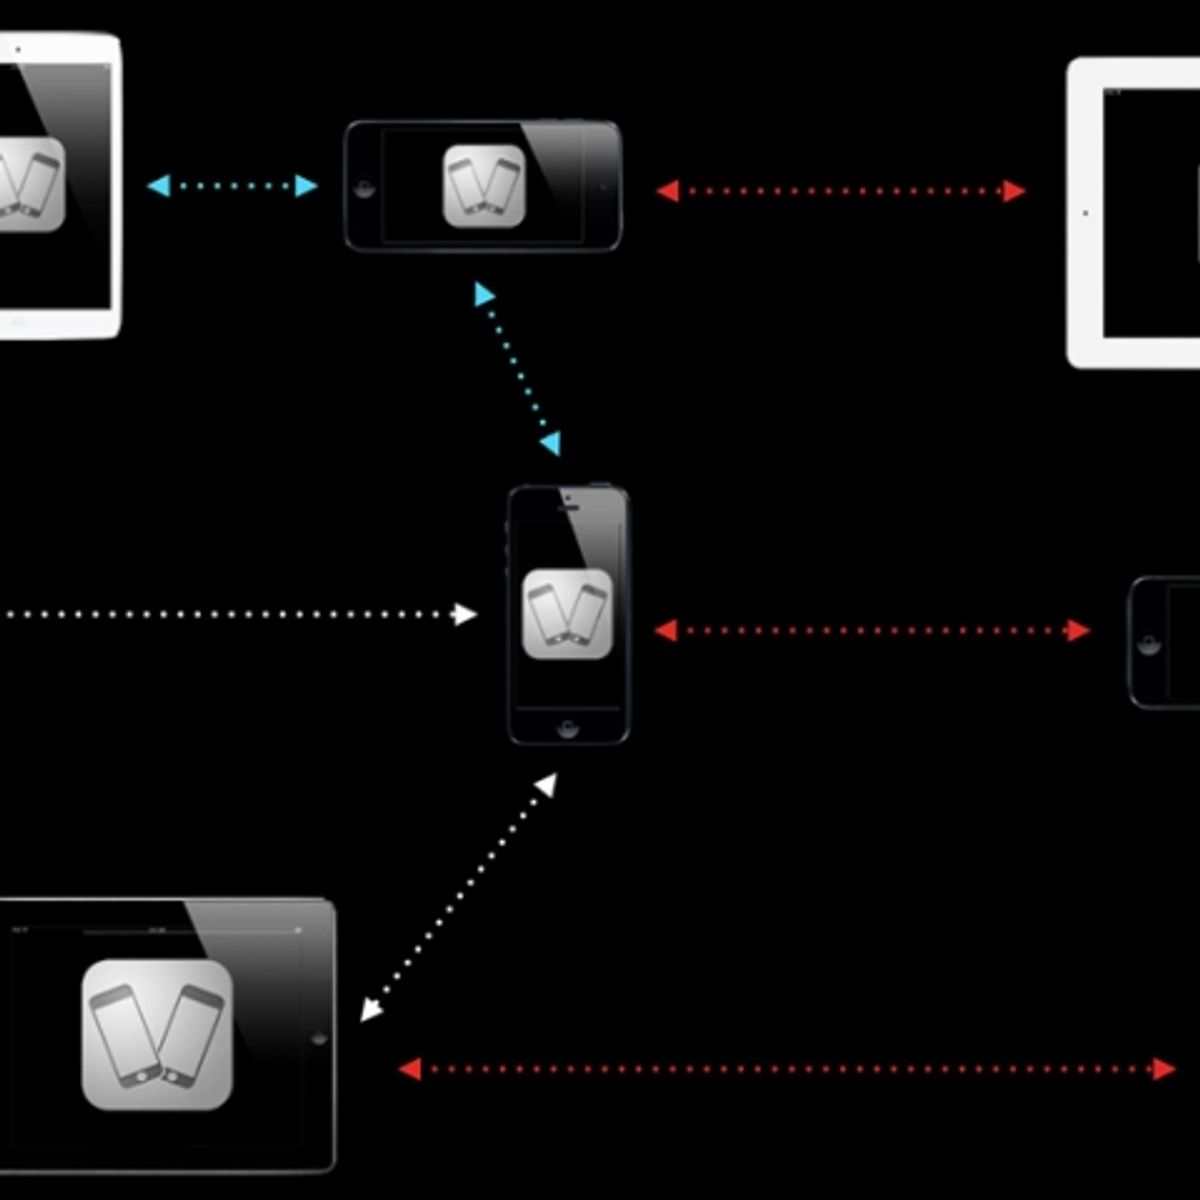 How to setup the peer to peer connection between two Android